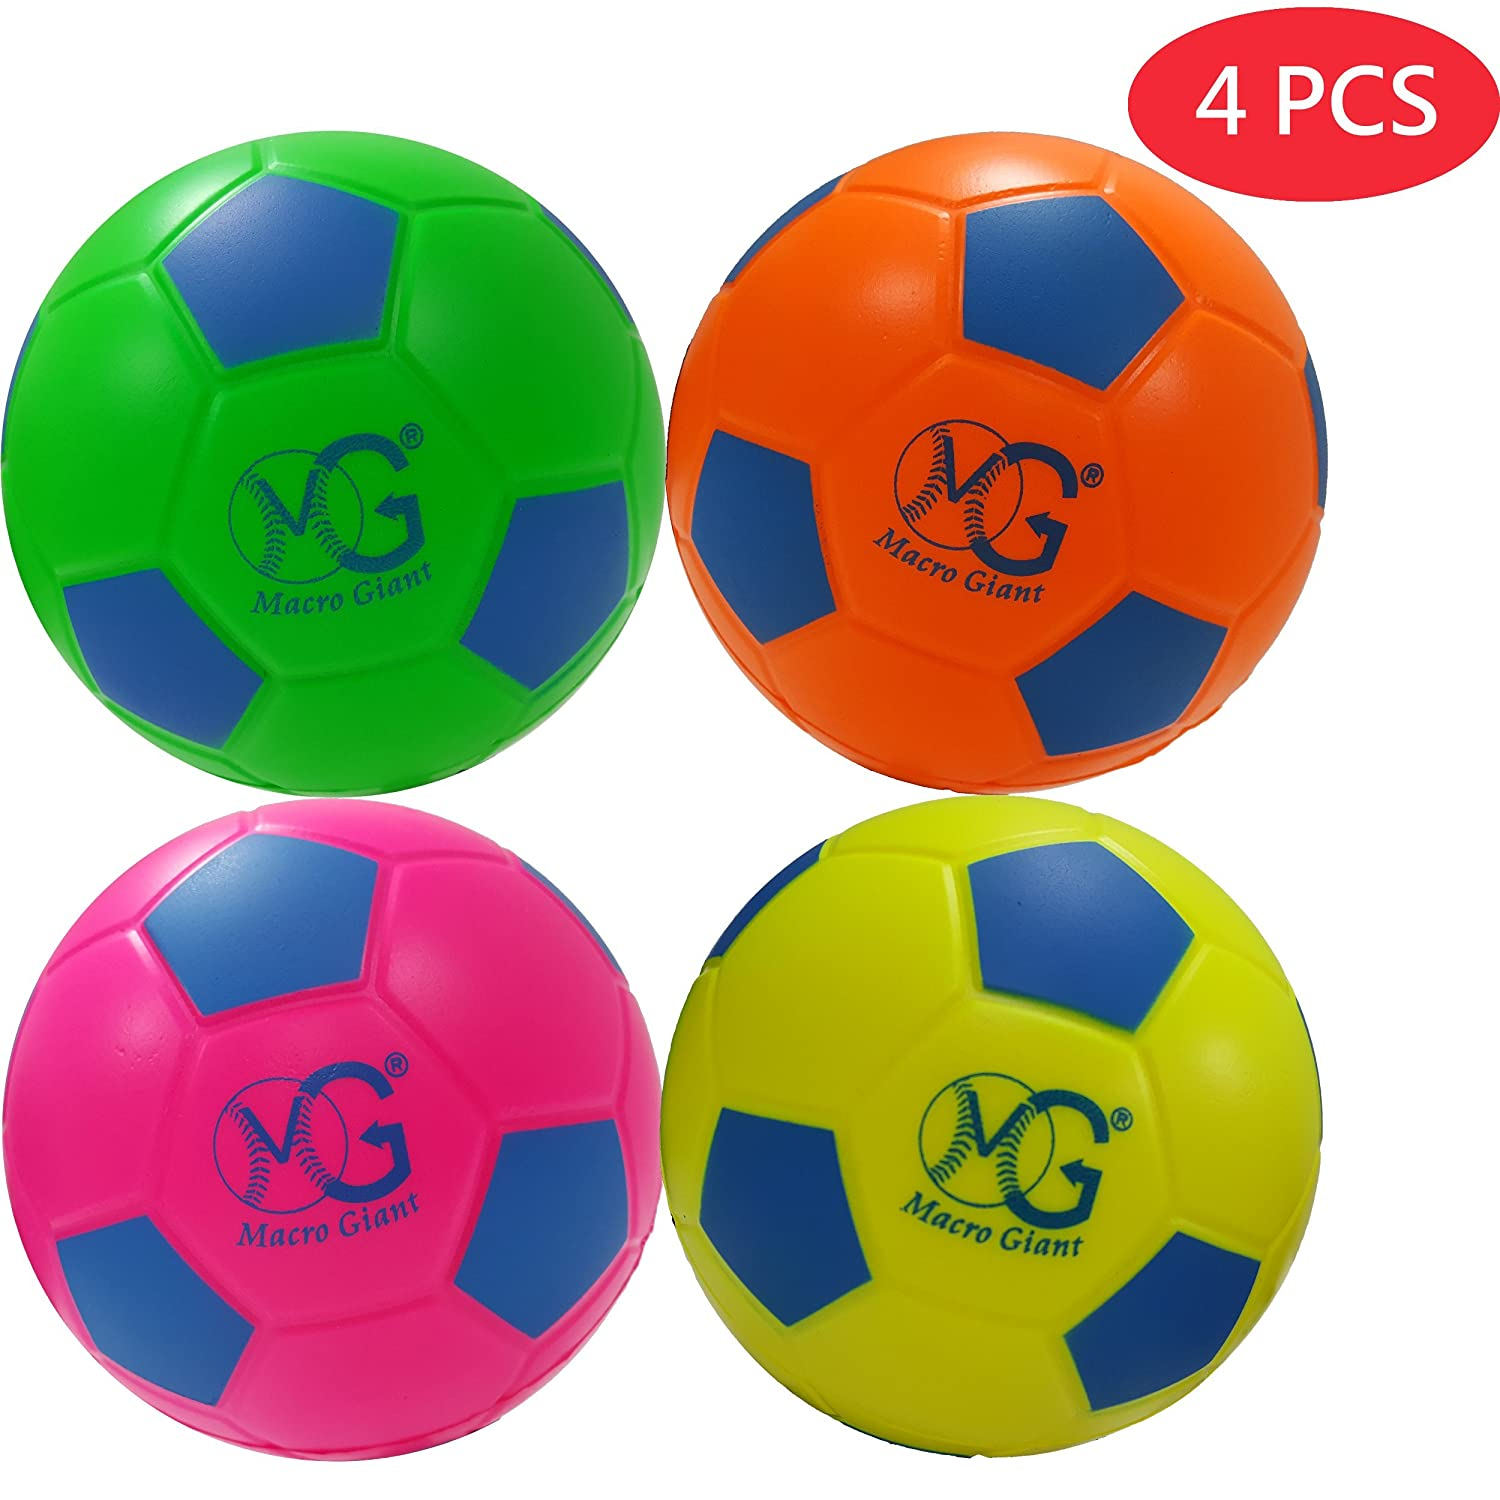 Macro Giant 15cm Safe Soft Foam Training Practise Soccer Ball, Set of 4, Neon Colours, Playground Ball, Kid Sports Toys, Kickball, Beach Activity, School Playground, Kid Toy Gift, New Year Gift B01M69SQM3